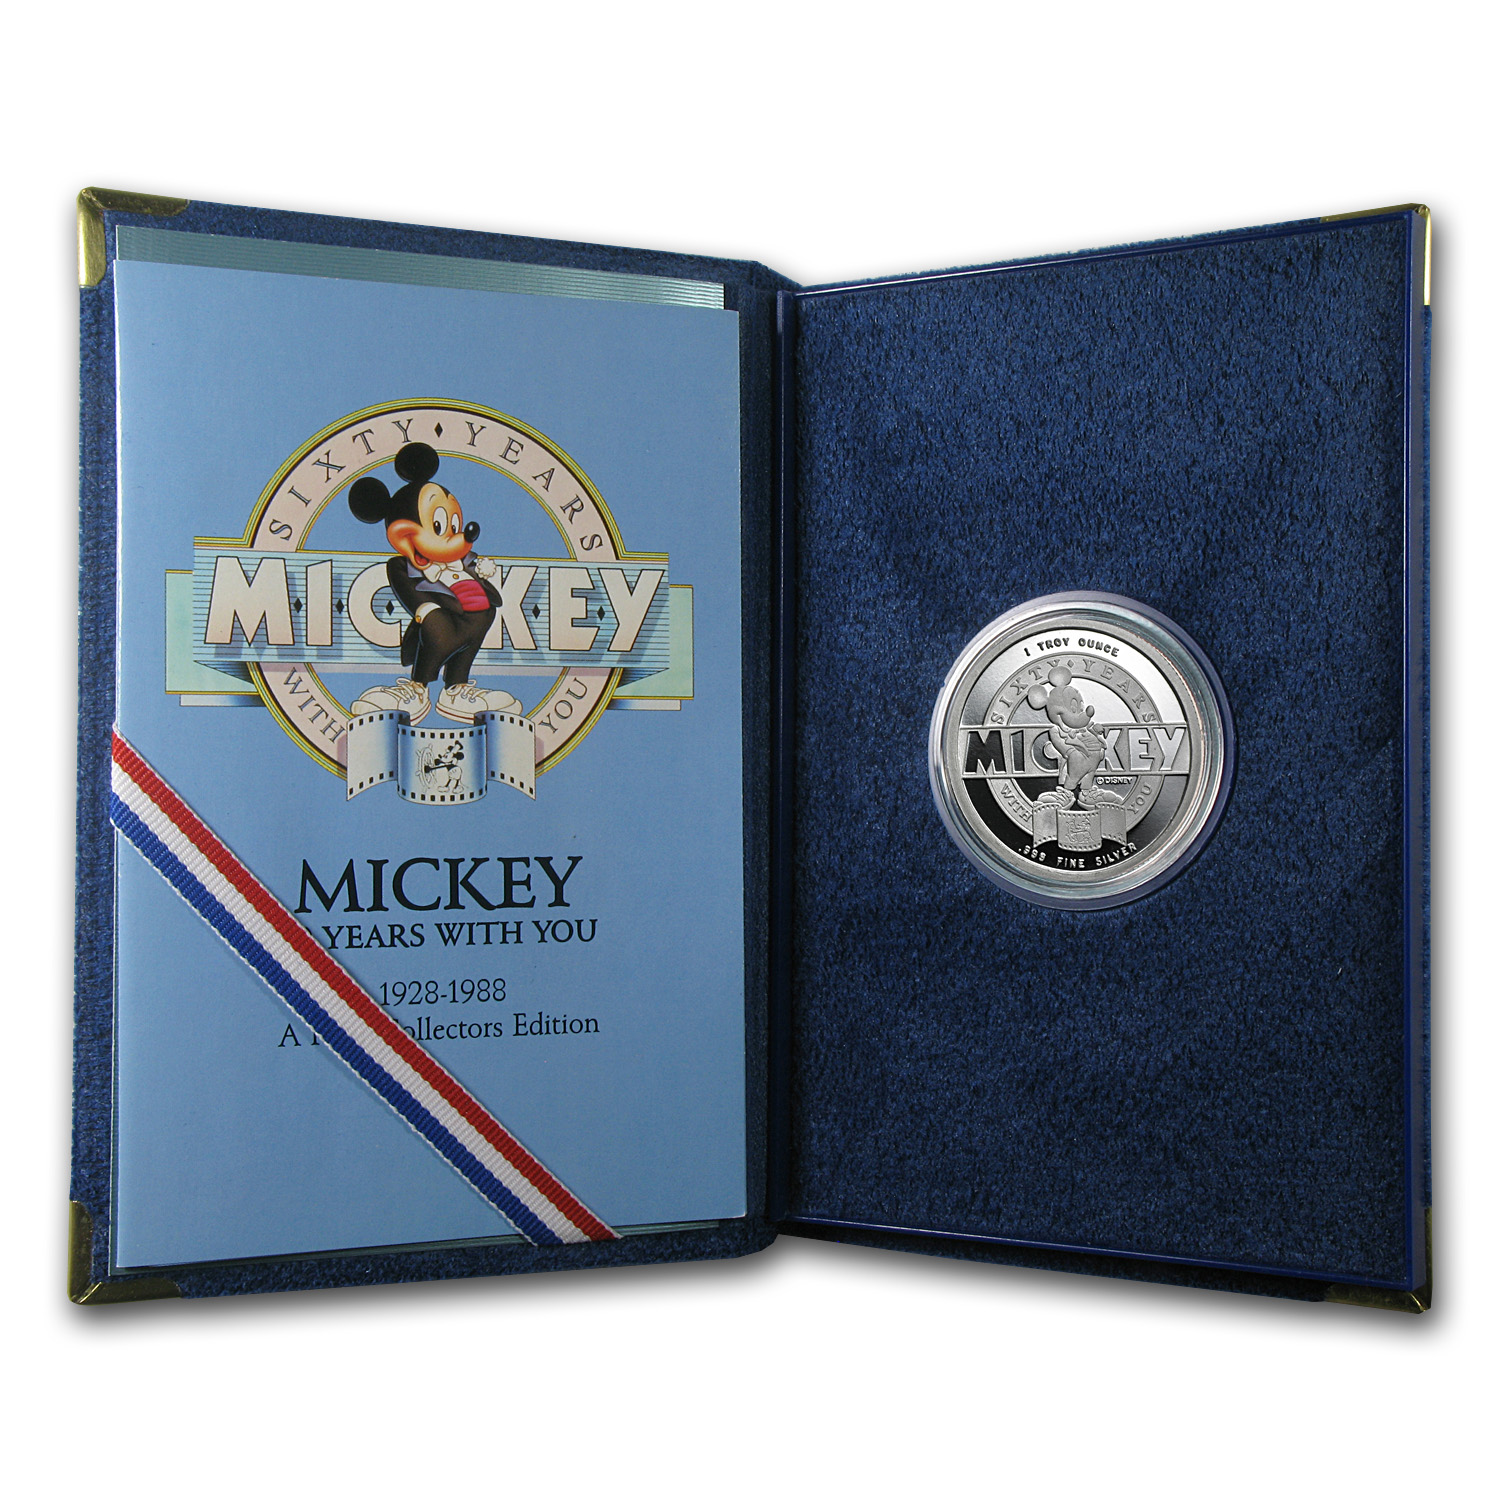 1 oz Silver Round - Mickey Mouse 60th Anniv of Steamboat Willie